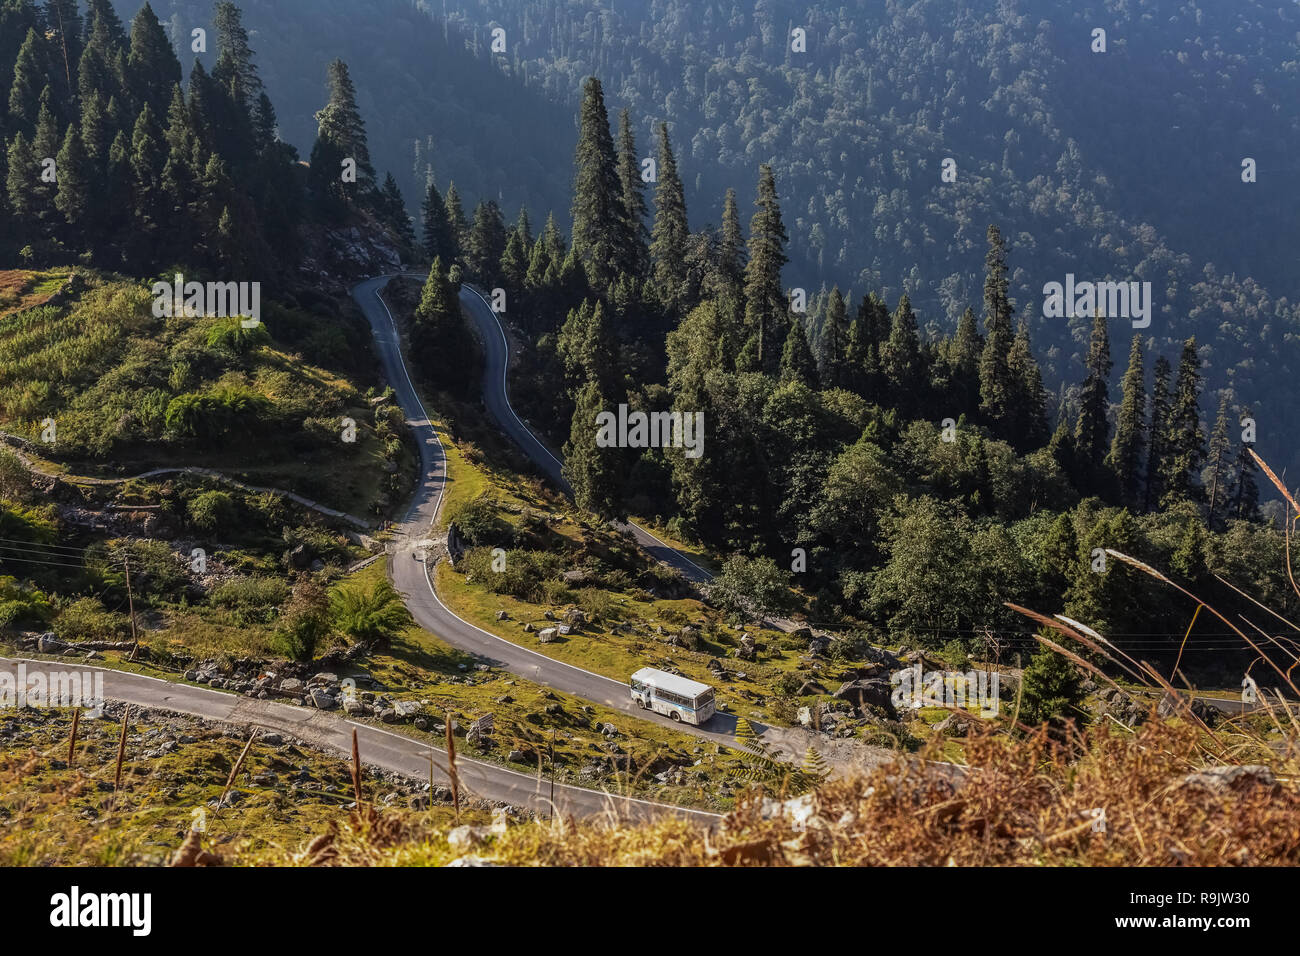 Scenic high altitude mountain road aerial view in the Himalayan region of Almora Uttarakhand India. Stock Photo